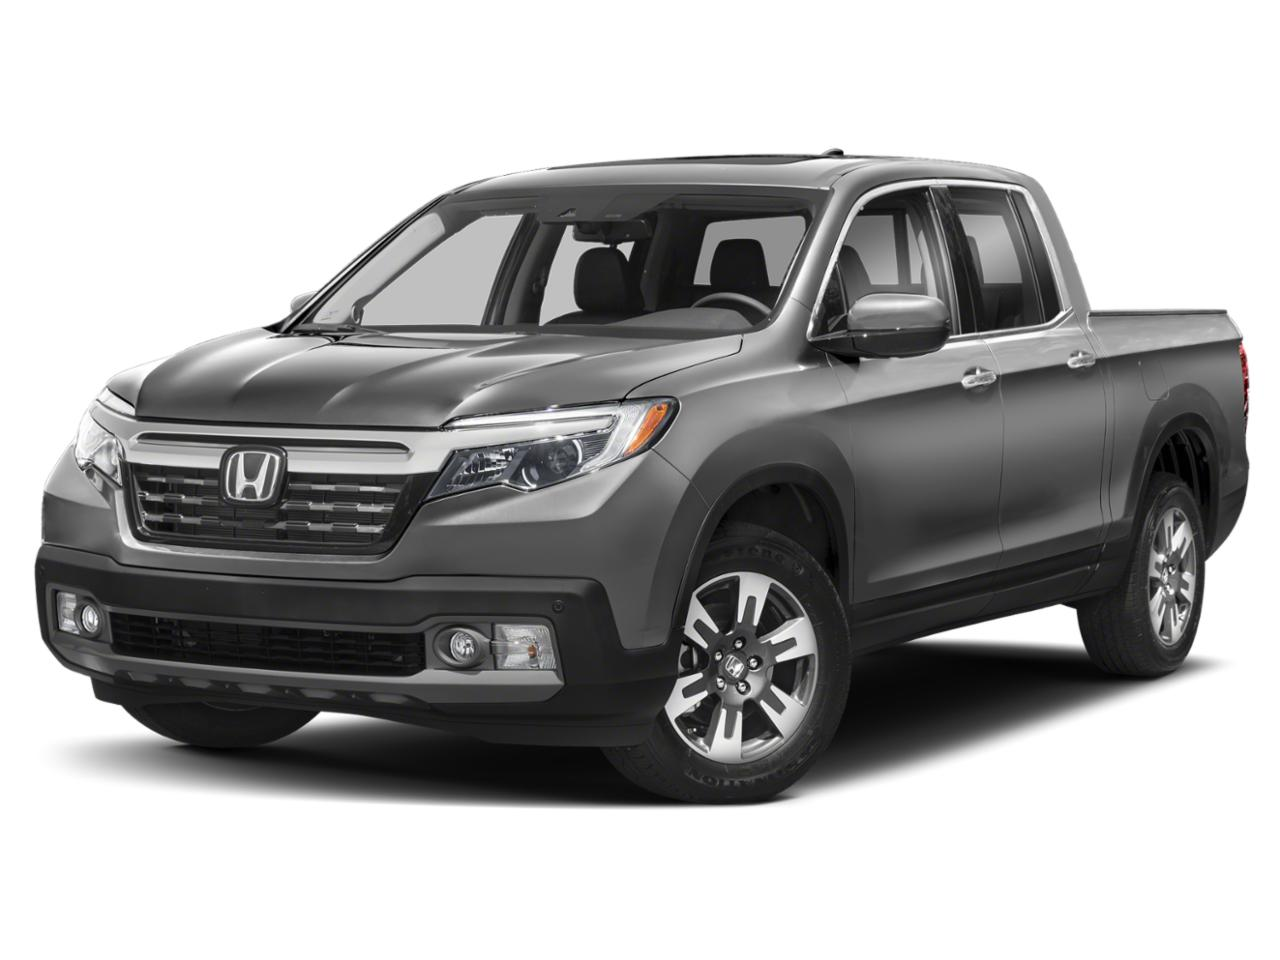 2019 Honda Ridgeline Vehicle Photo in Portland, OR 97225